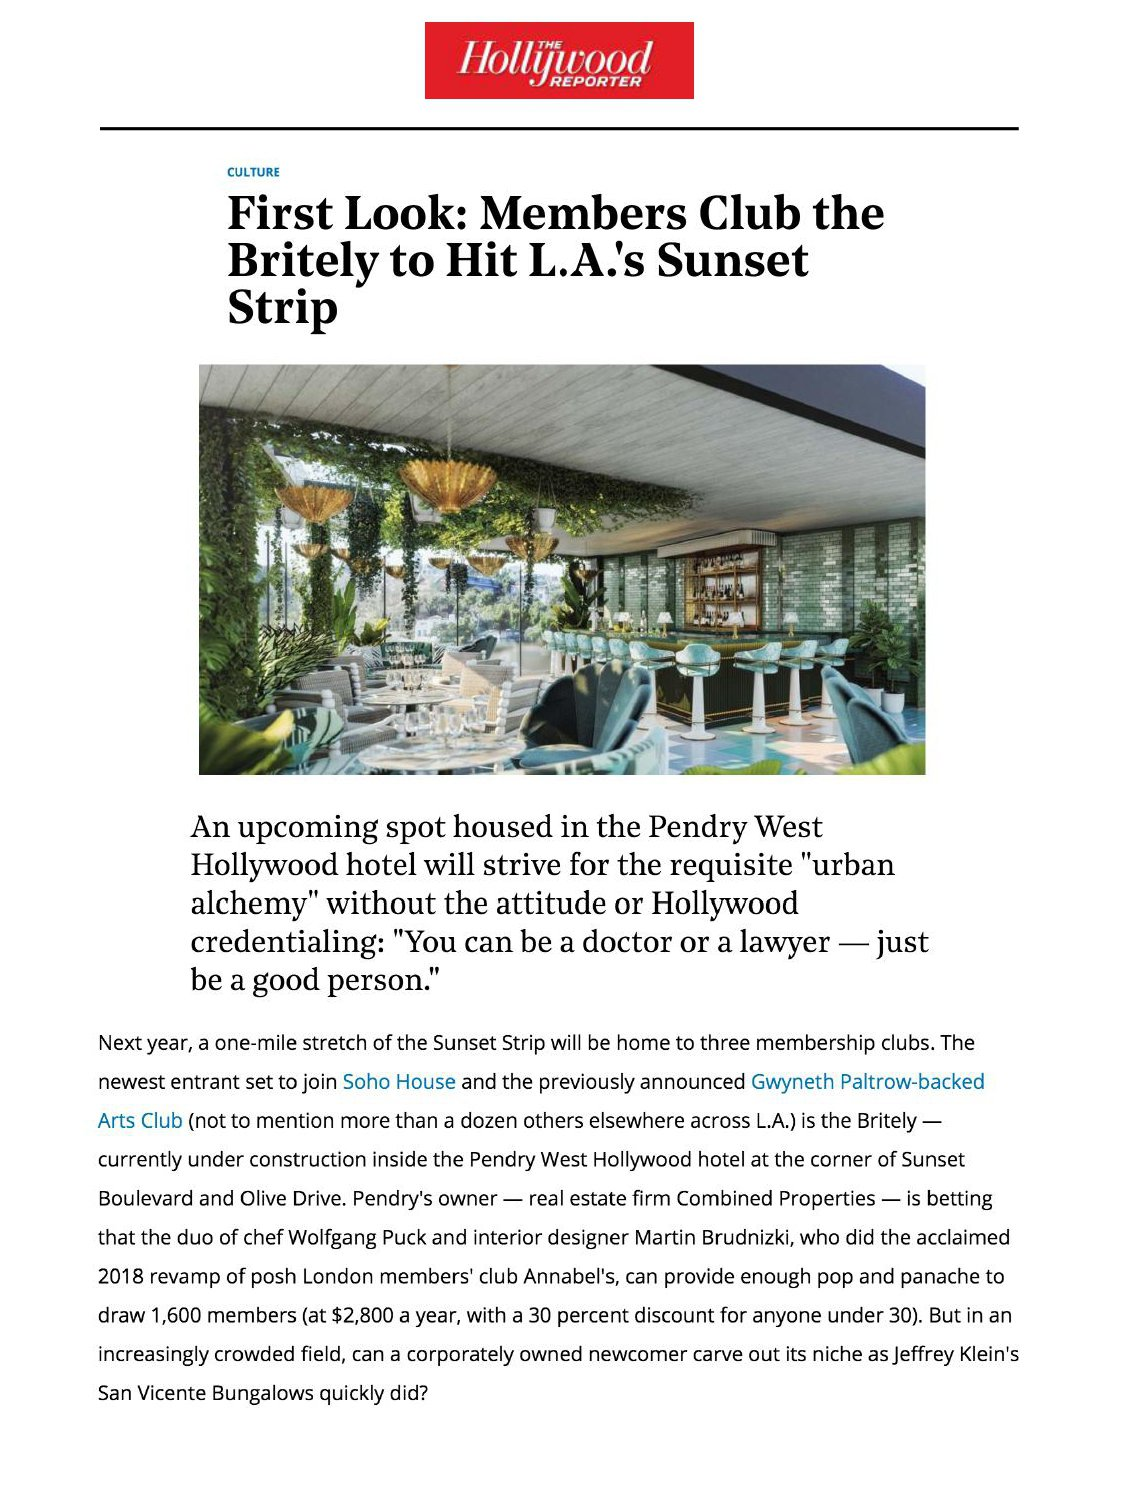 The Hollywood Reporter (Online)_The Britely_6.17.19._page-0001.jpg